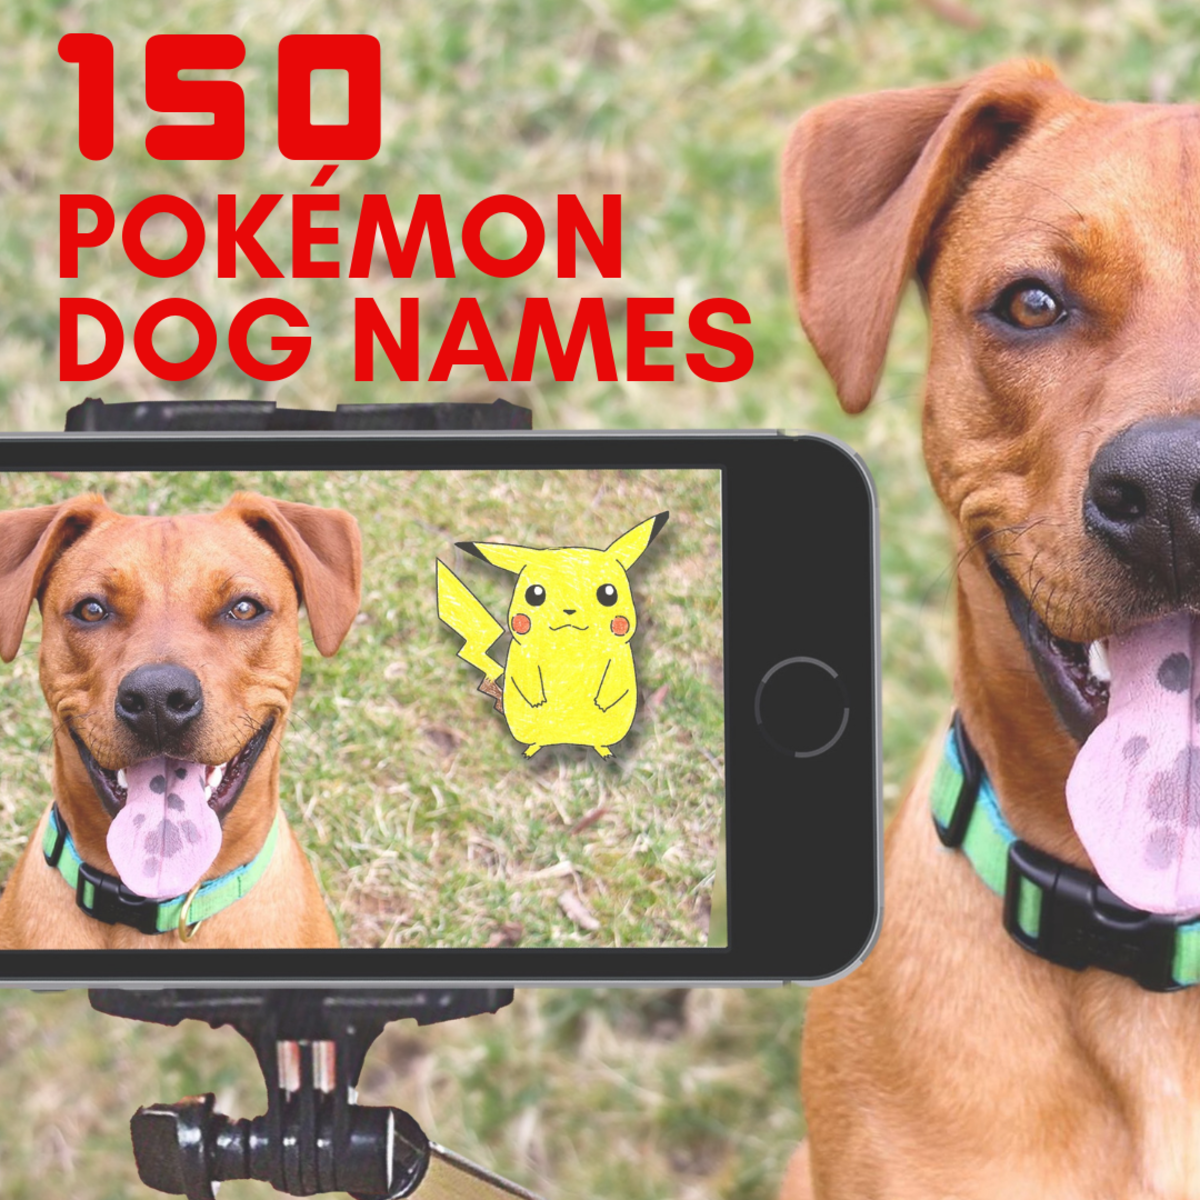 150 Pokémon Dog Names With Nicknames